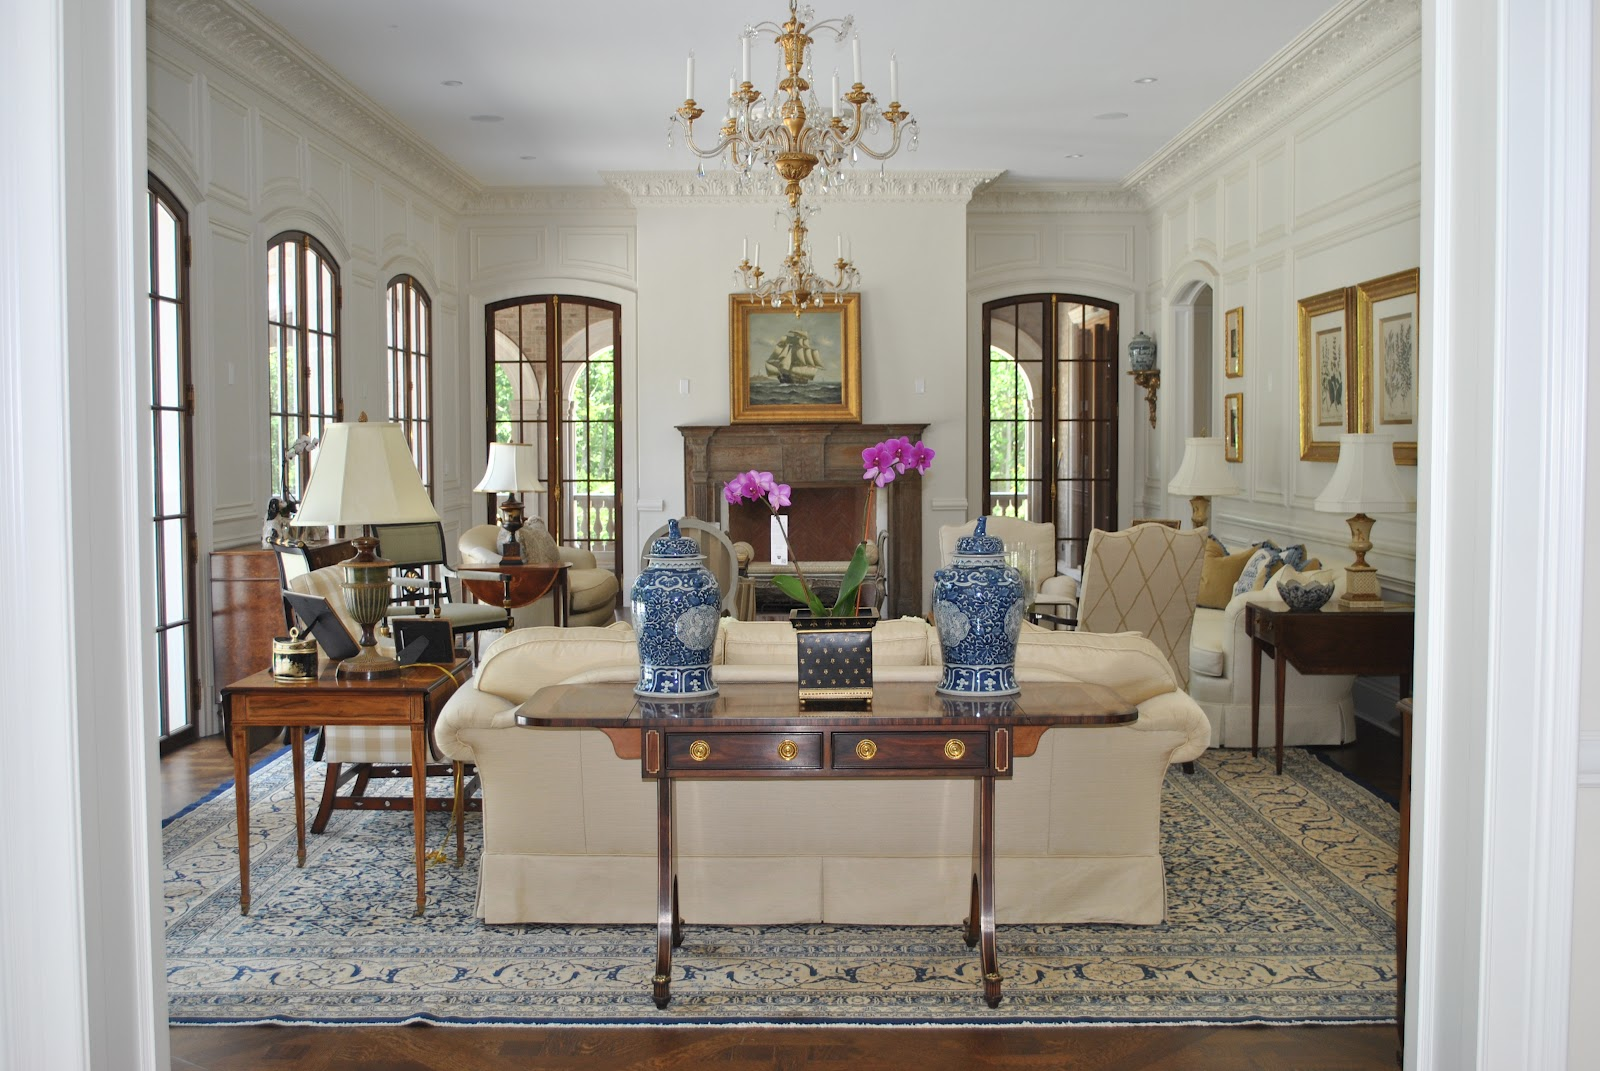 enchanting home staging small living rooms   A living room is born....... - The Enchanted Home